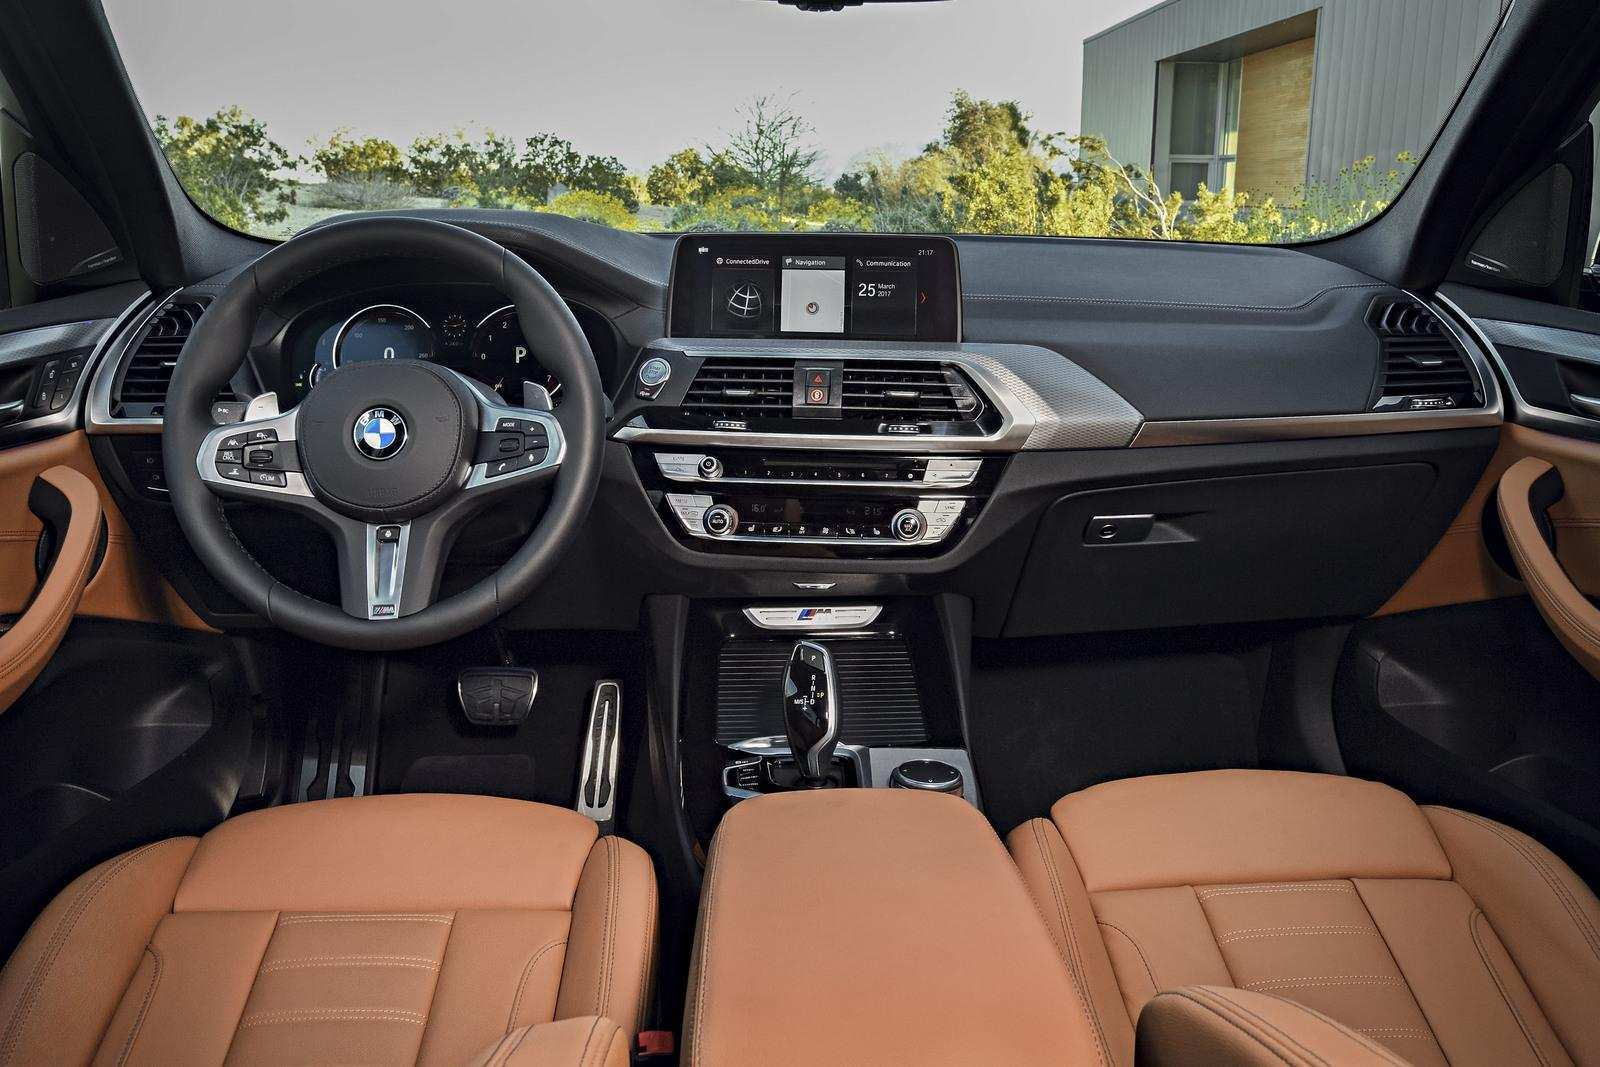 69 Best Review 2019 Bmw X3 Release Date Engine for 2019 Bmw X3 Release Date